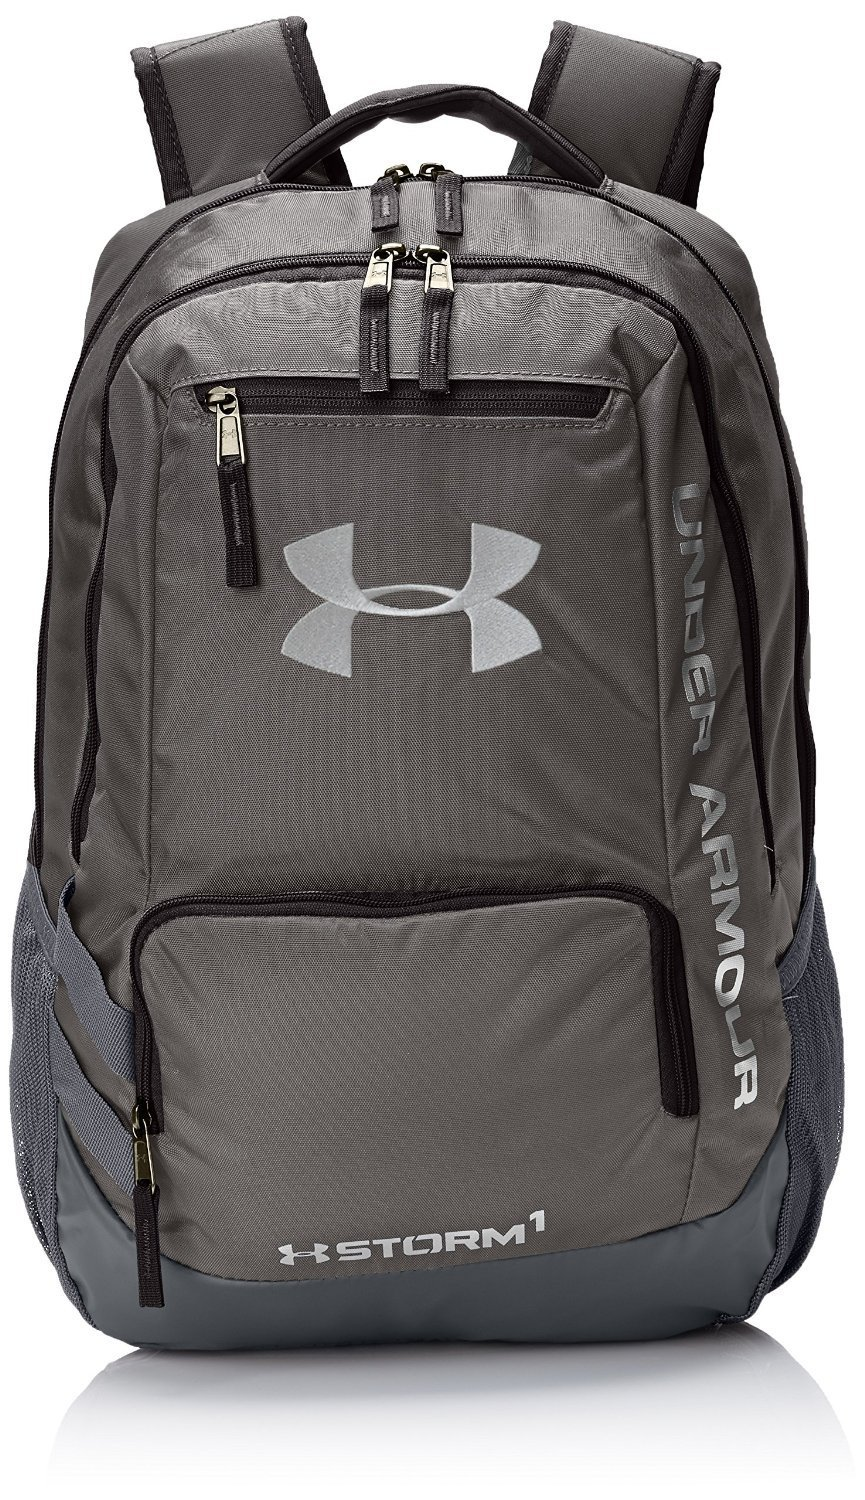 380f1aa5df29 Buy Under Armour Hustle II Premium Backpack - Graphite in Cheap ...